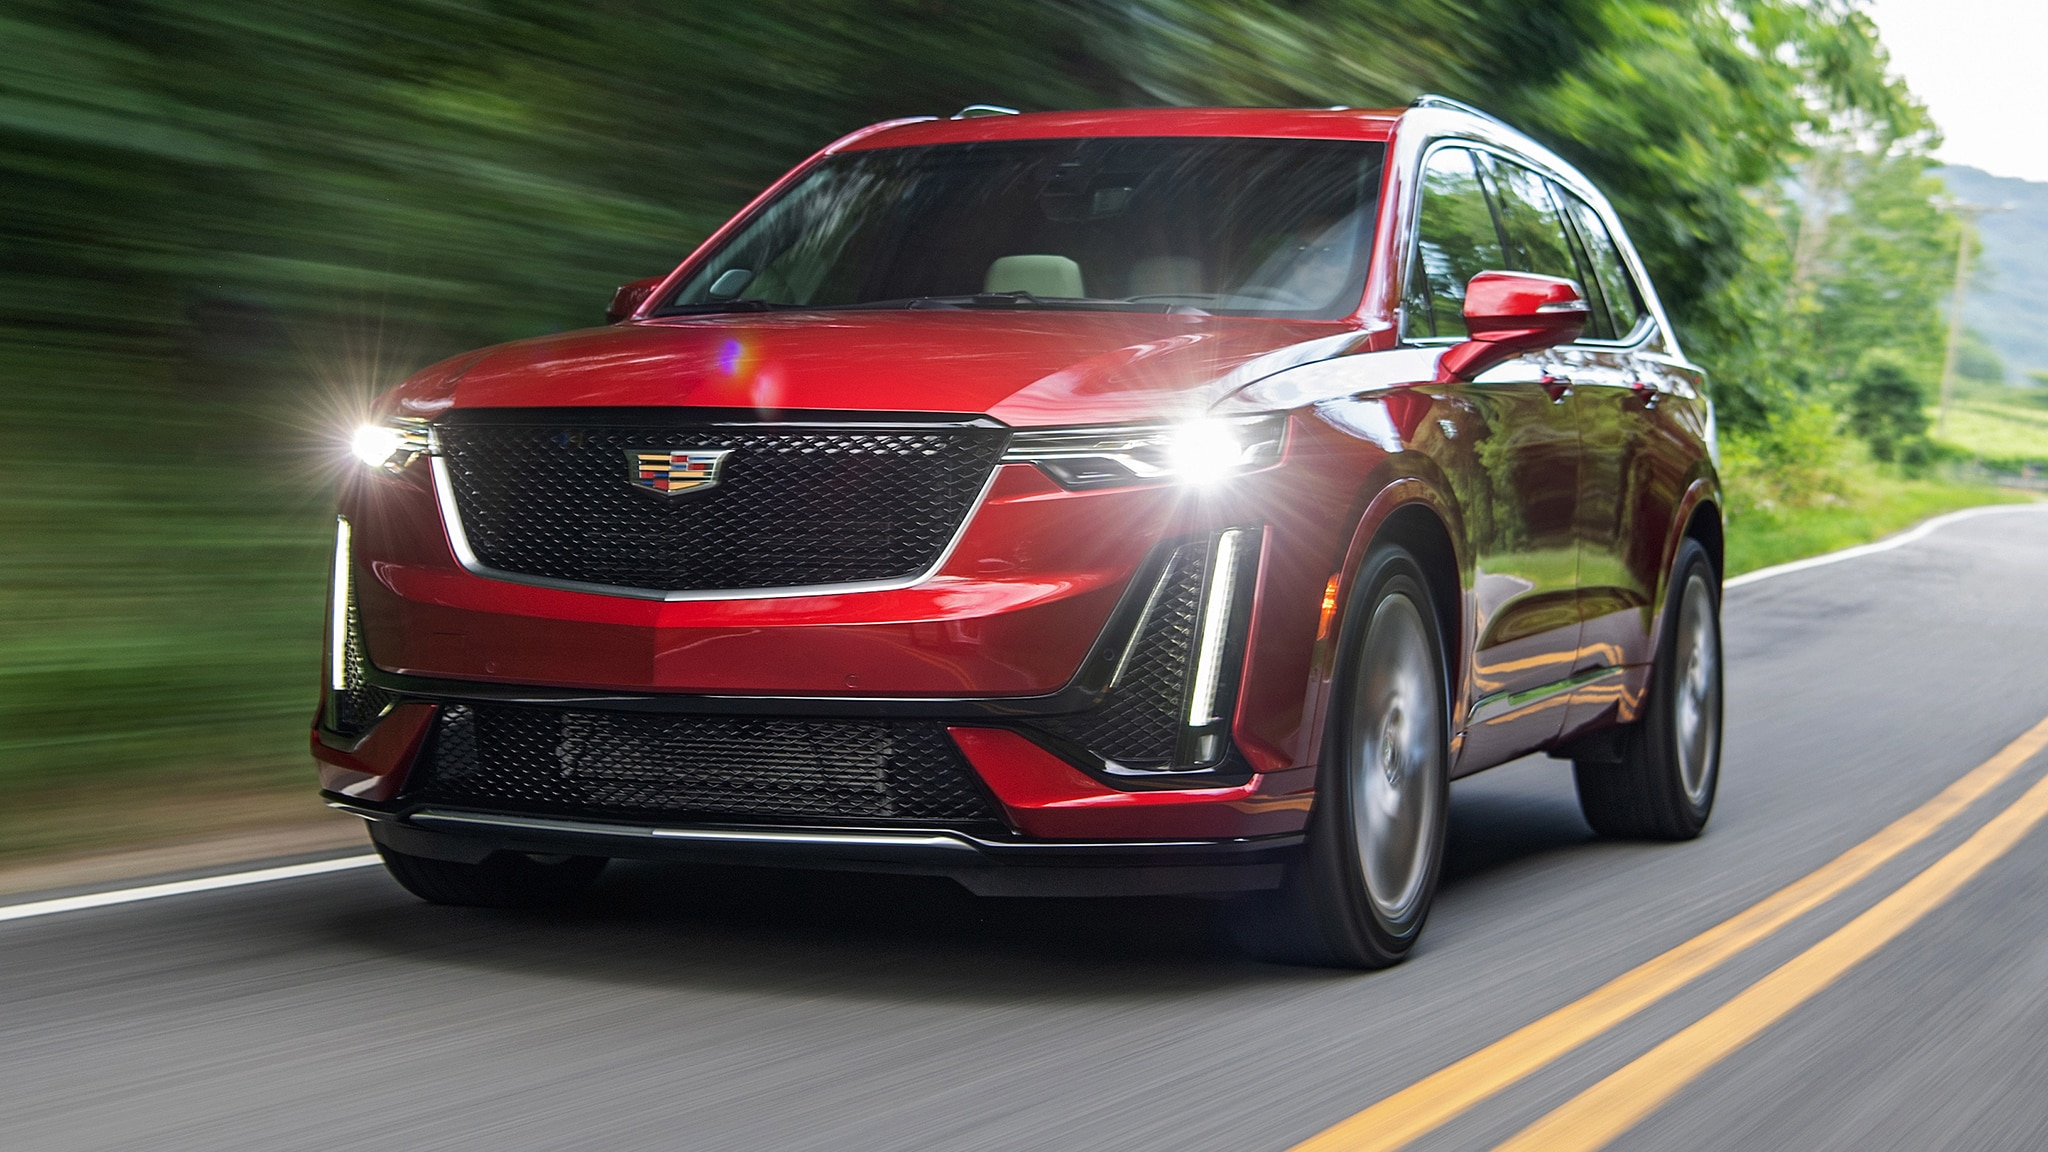 2020 Cadillac XT5 Review, Interior, Price, Specs >> 2020 Cadillac Xt6 First Drive Review Something Of A Revelation